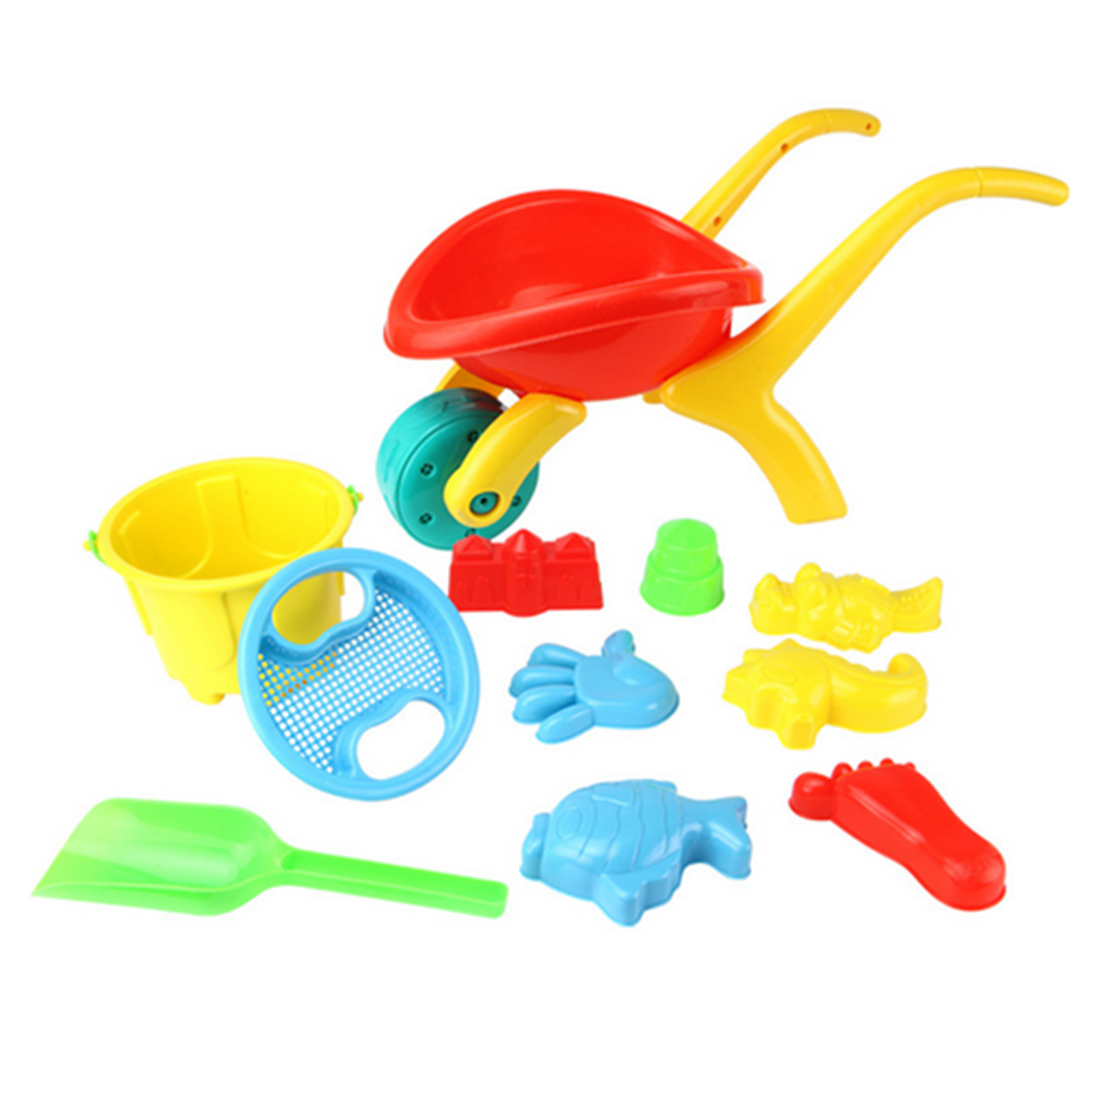 12 In 1 Large Beach Toy Cart Set Plastic Outdoor Beach Play Toys For Children Gifts   Random Color